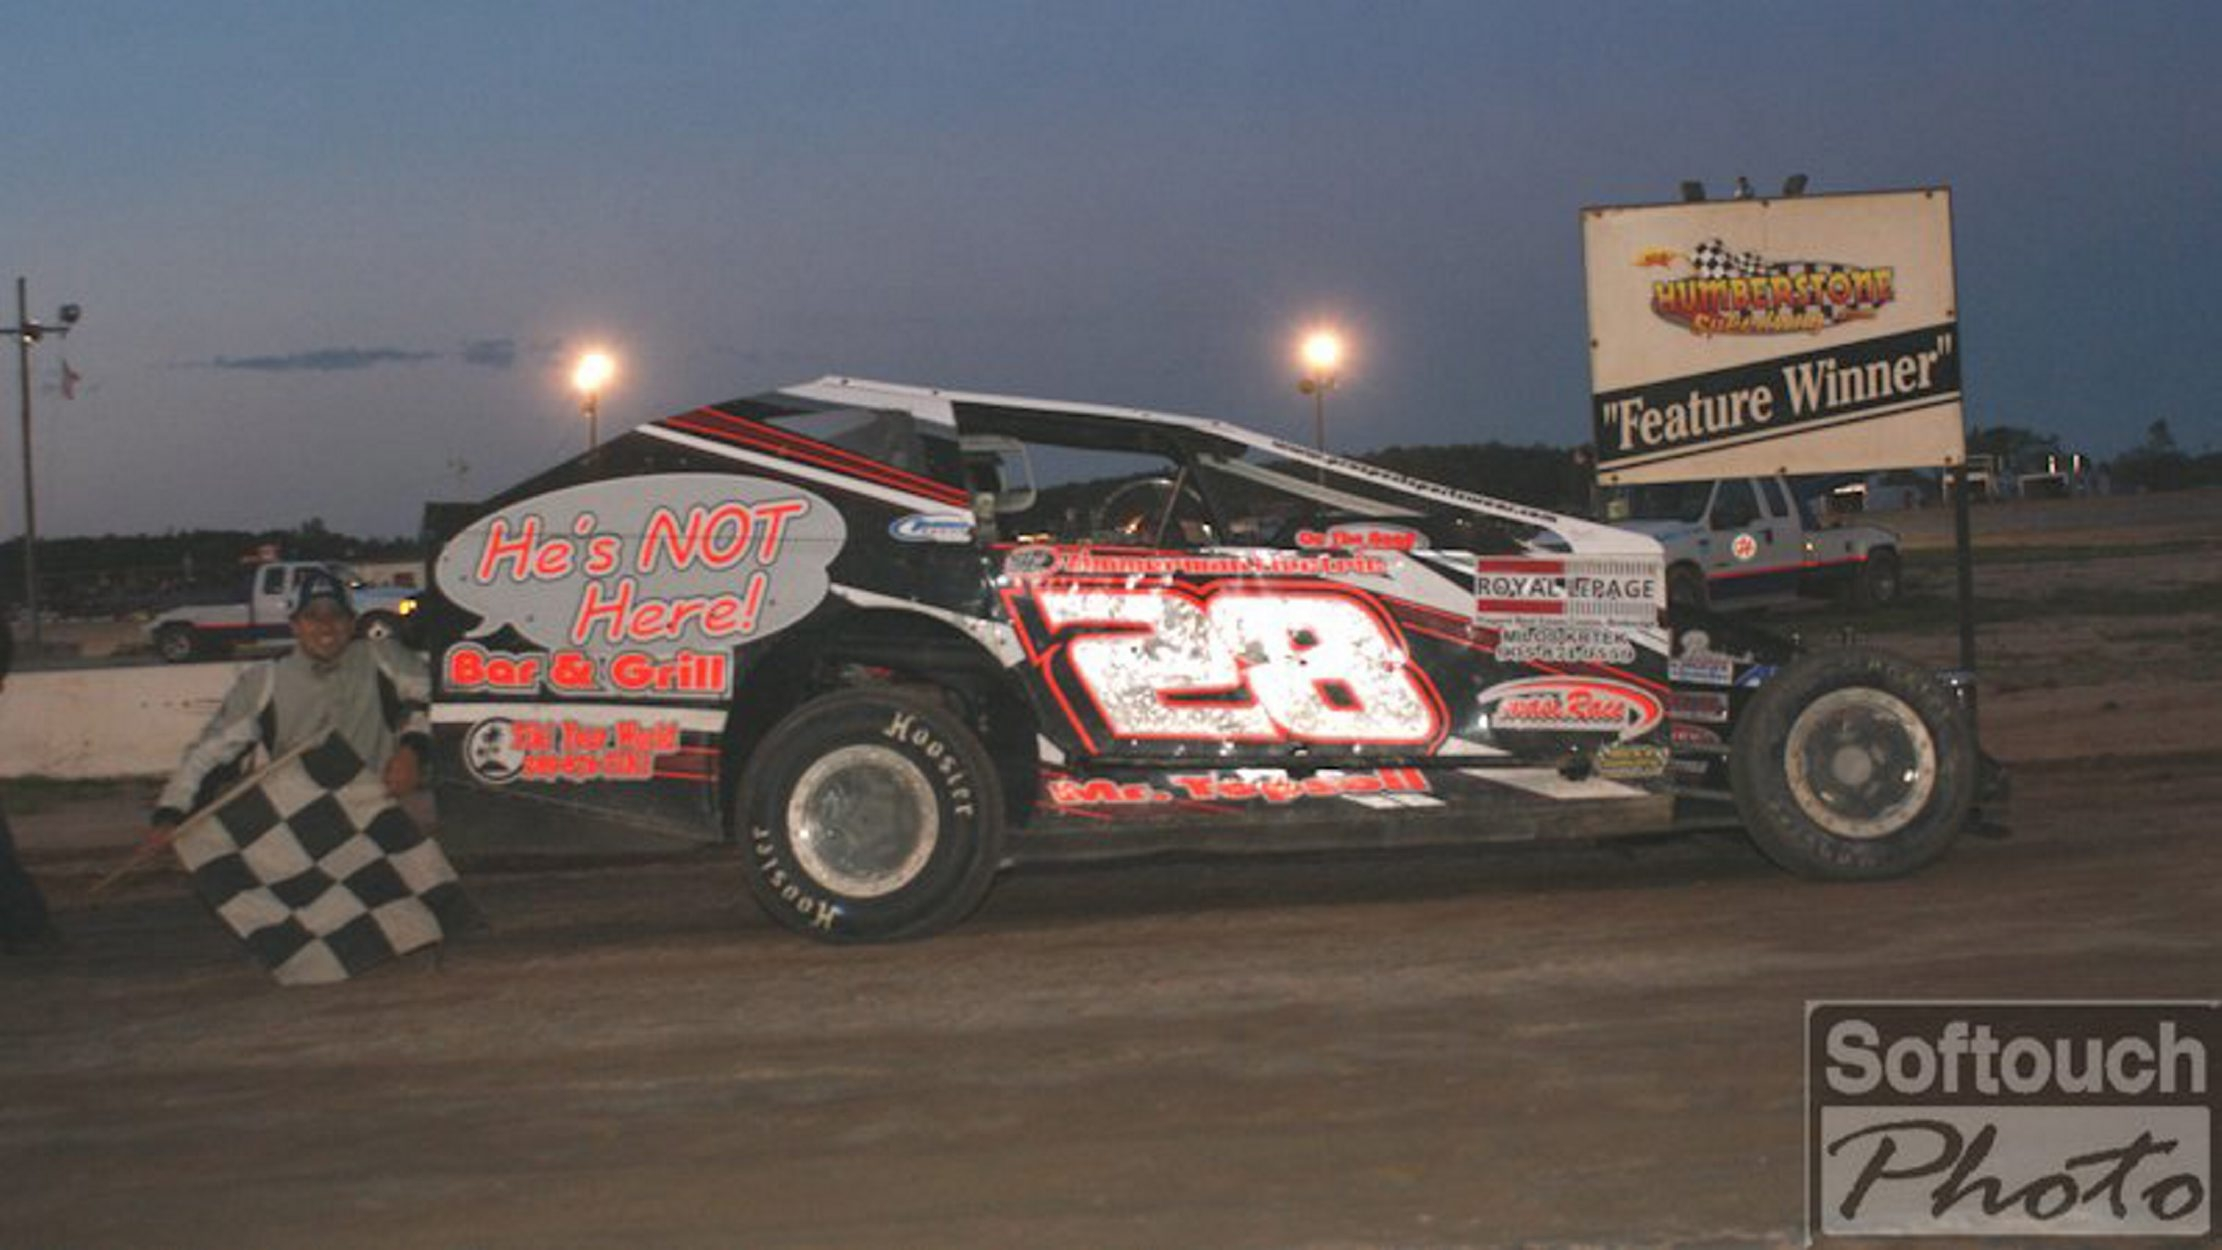 Gary Lindberg, with six DIRTcar Sportsman victories at New Humberstone Speedway, is clinging to the points lead with two races remaining.